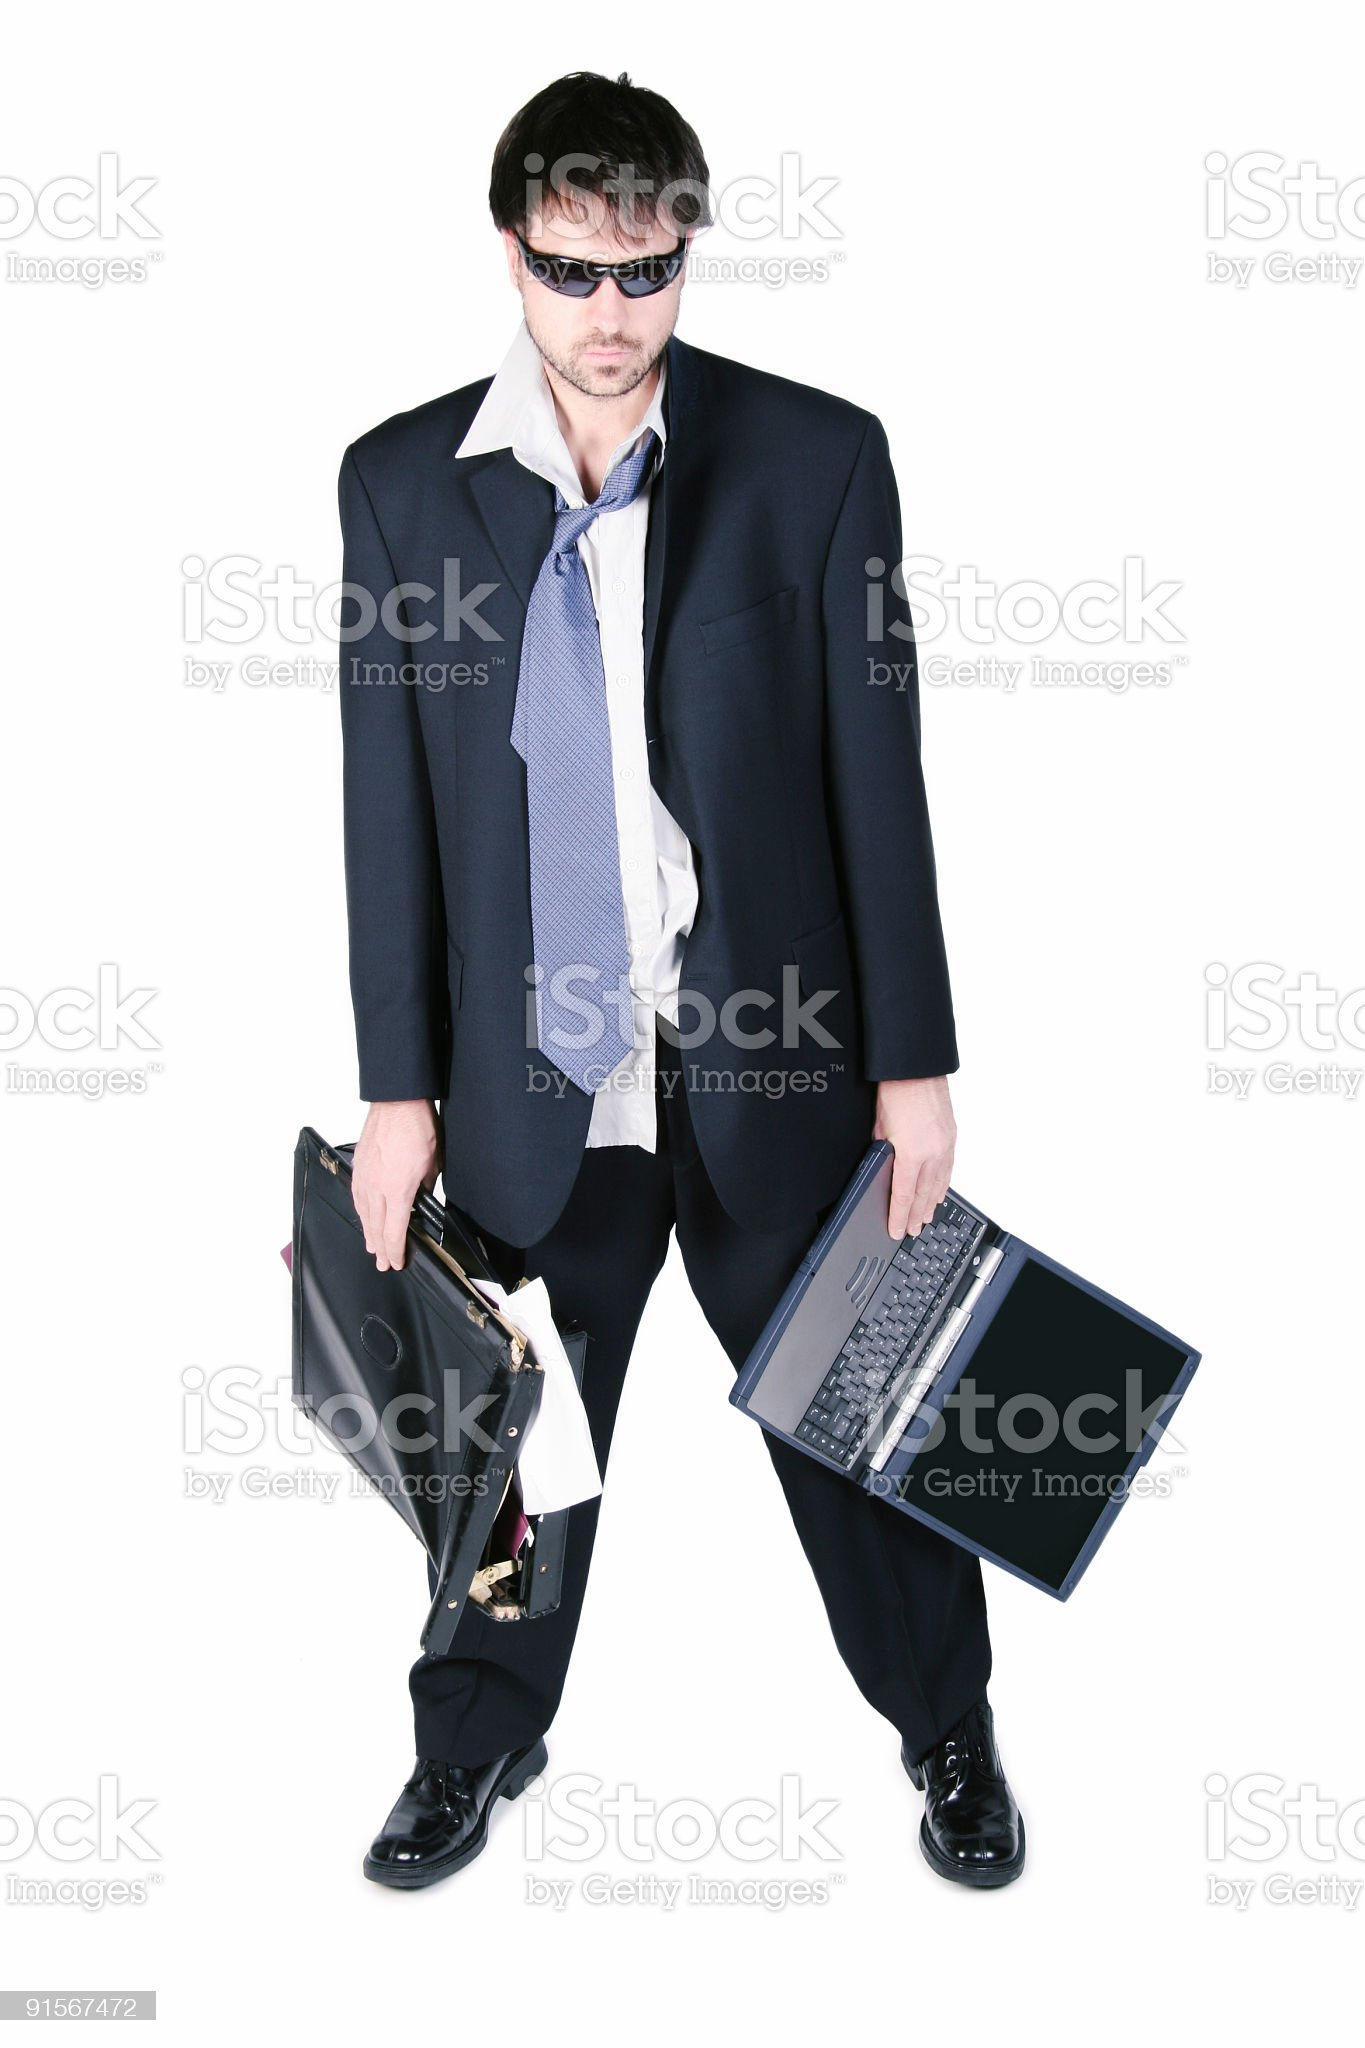 OverLoaded worker royalty-free stock photo